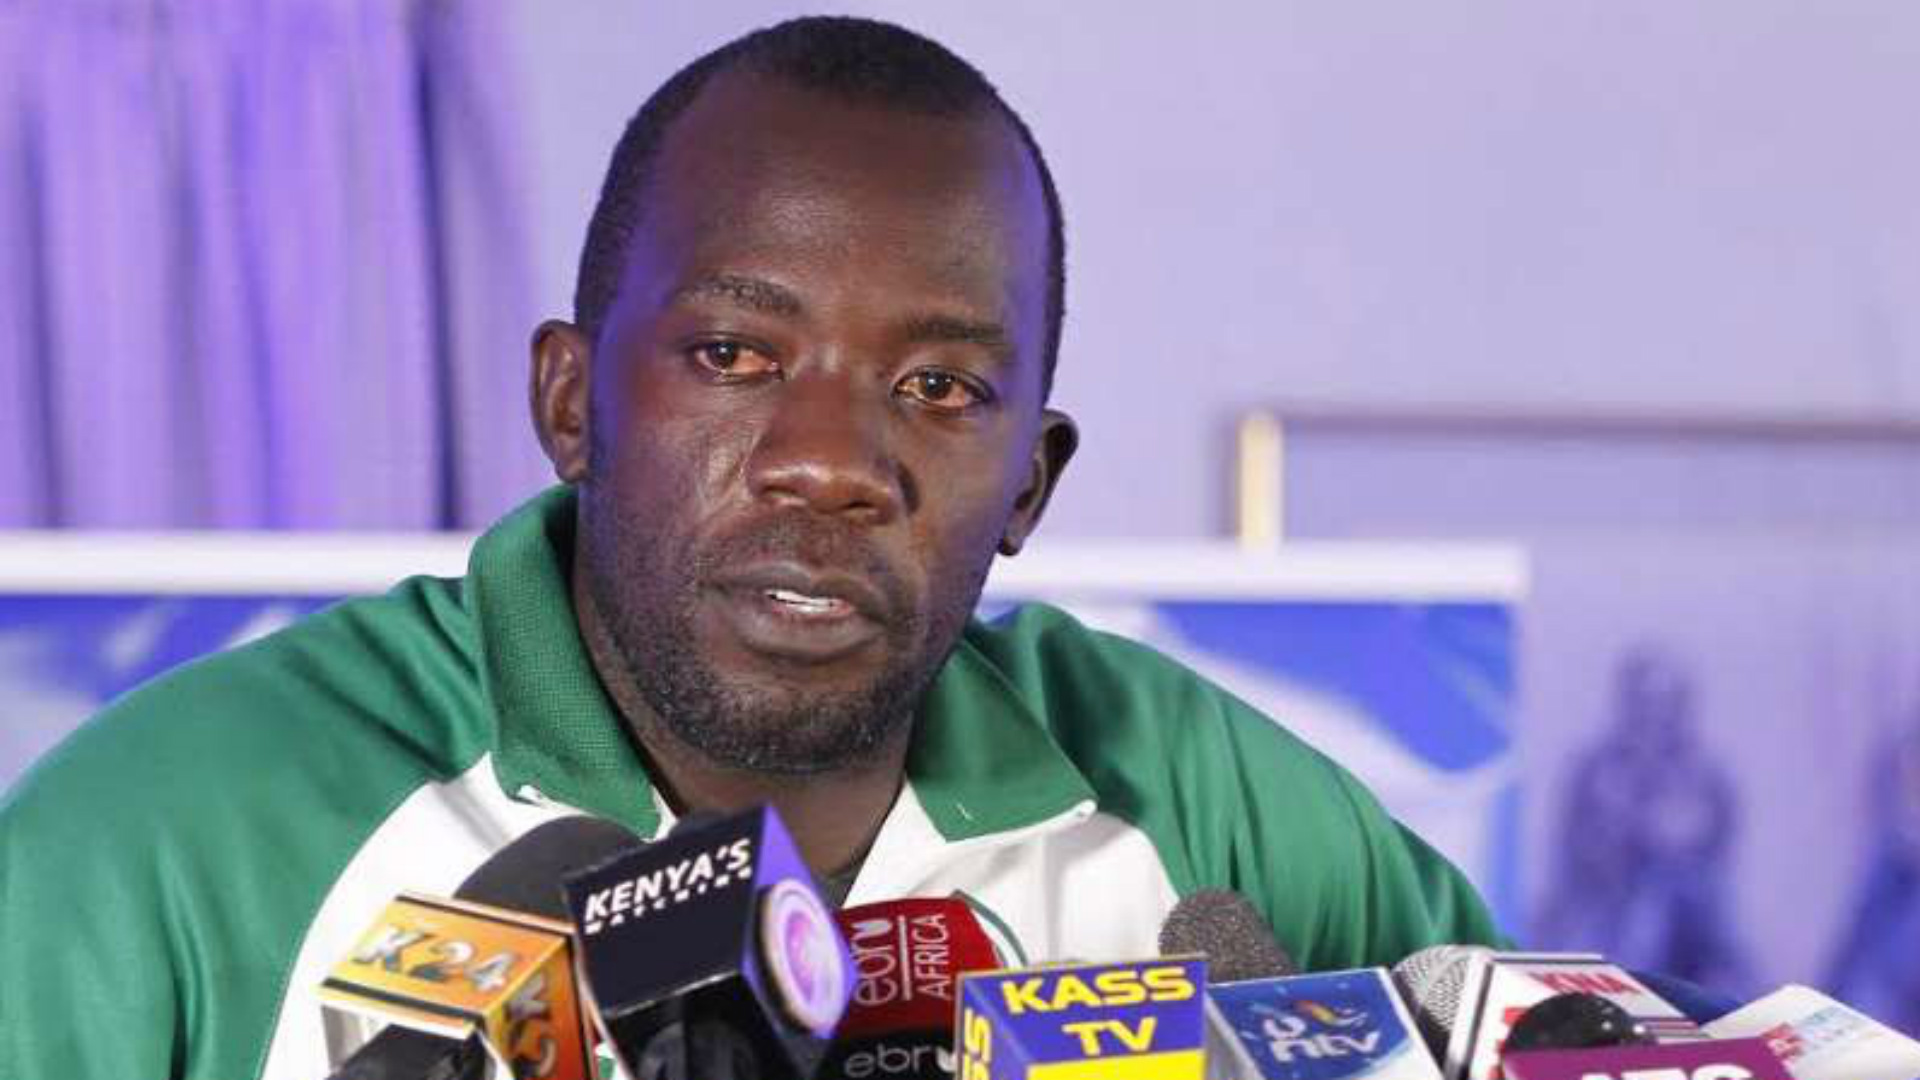 Jerim Onyango speaks on behalf of Gor Mahia in 2015 season.